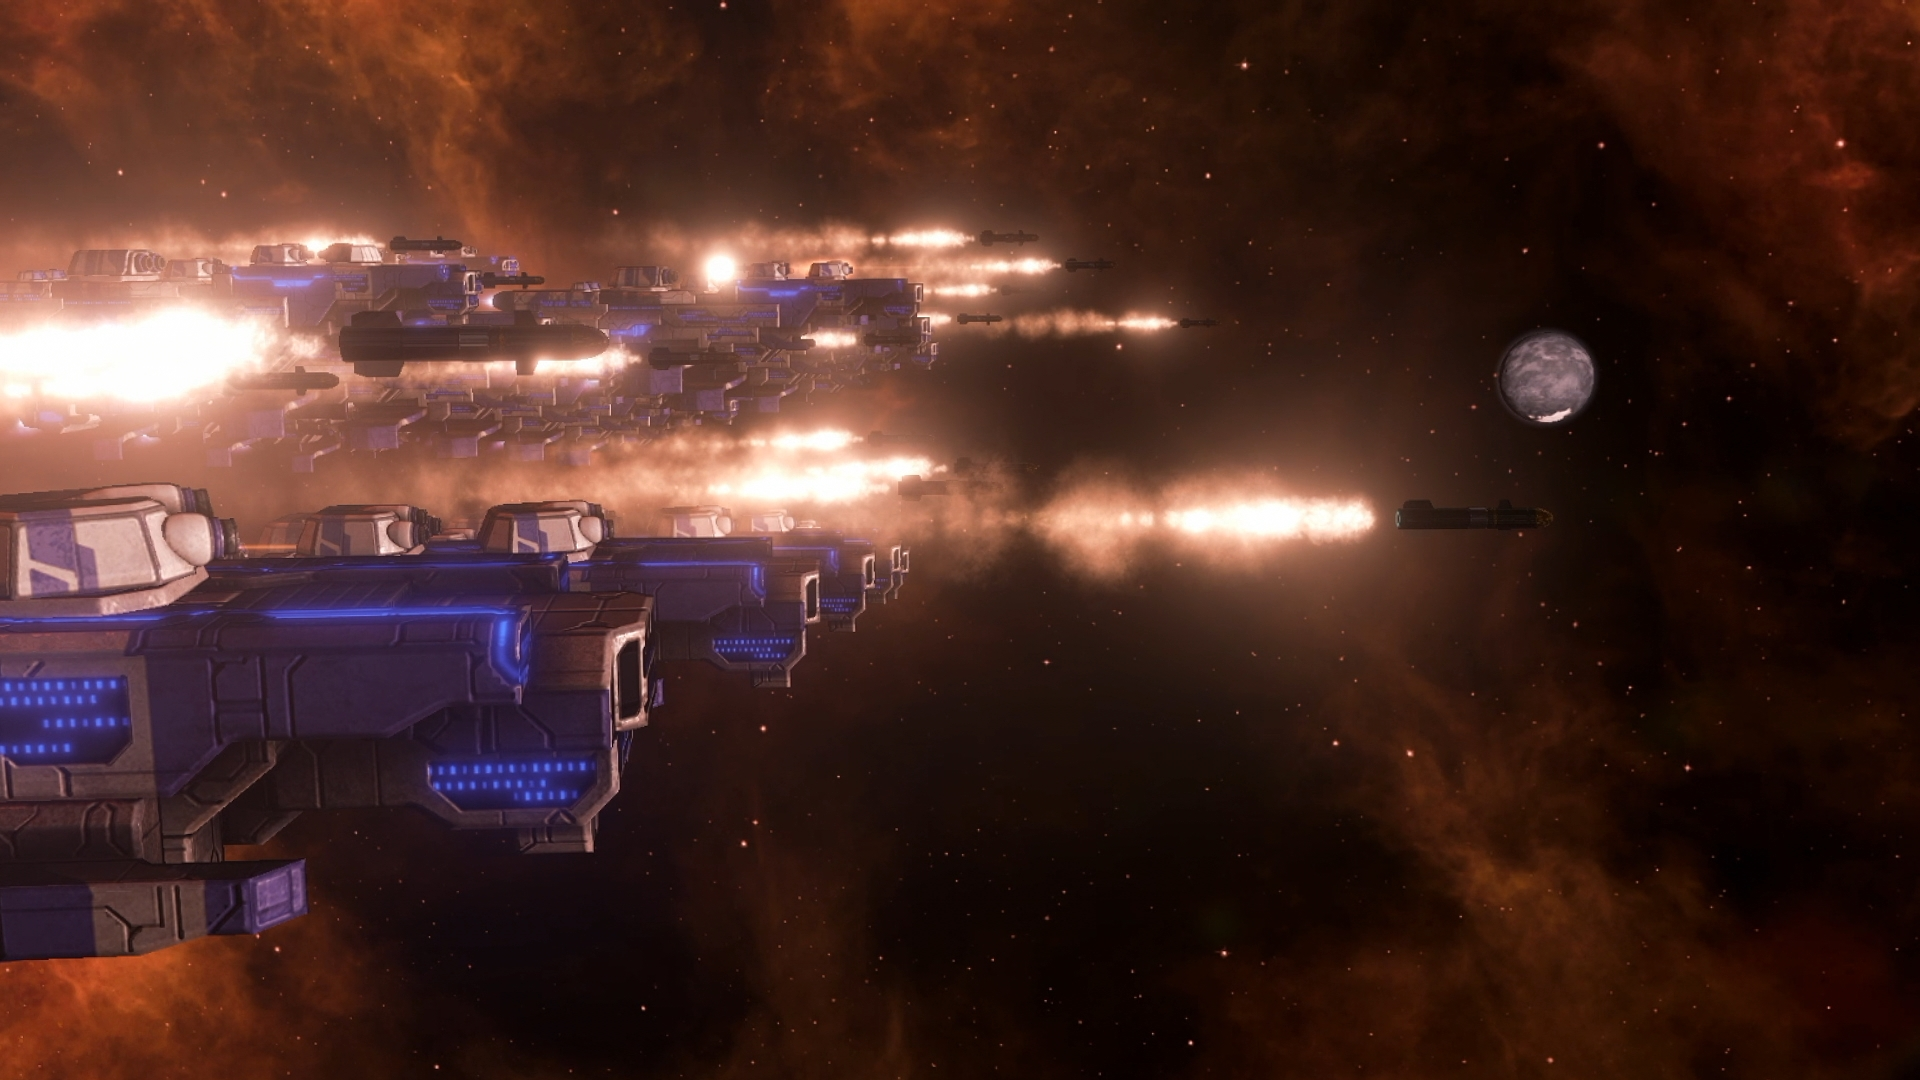 Stellaris: Console Edition arrives in February, the first grand strategy title on PS4, Xbox One